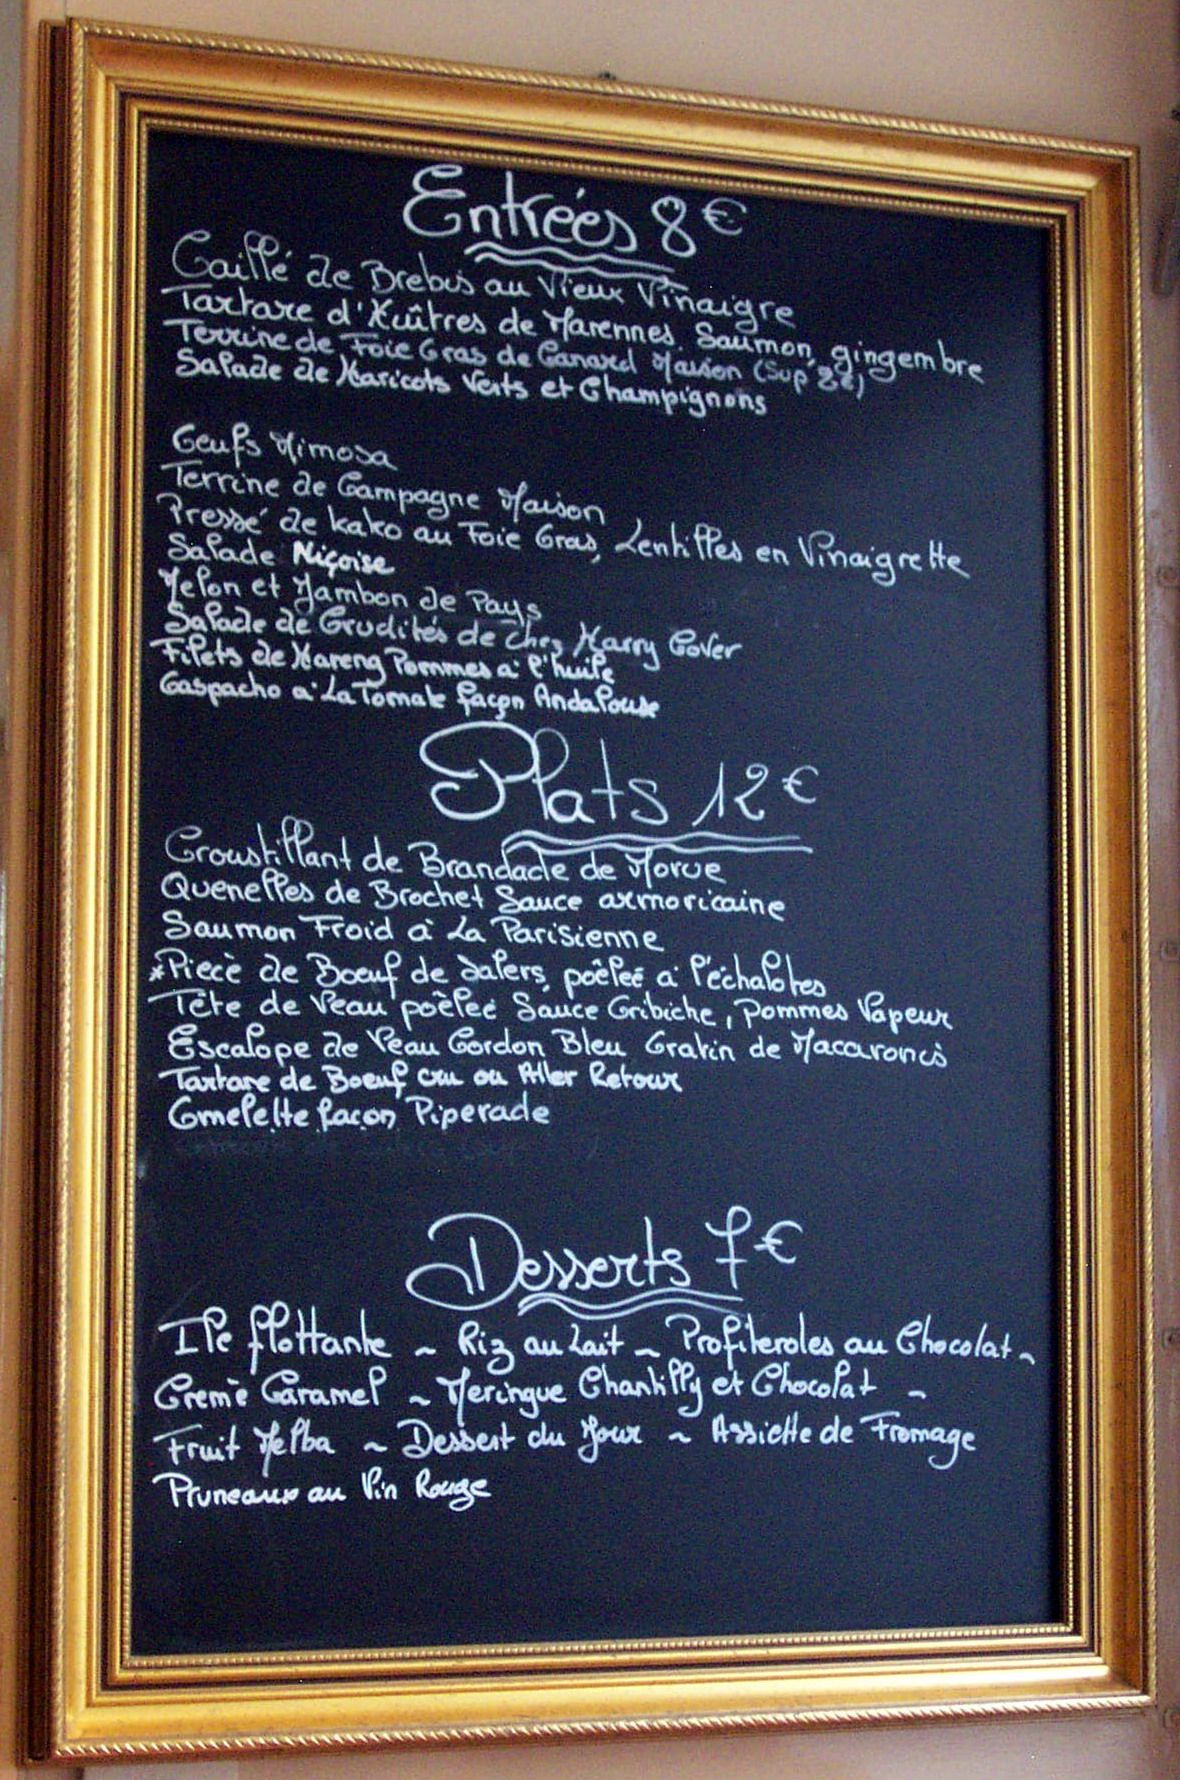 inspired by french cafe menus, perfect for an event   chow time